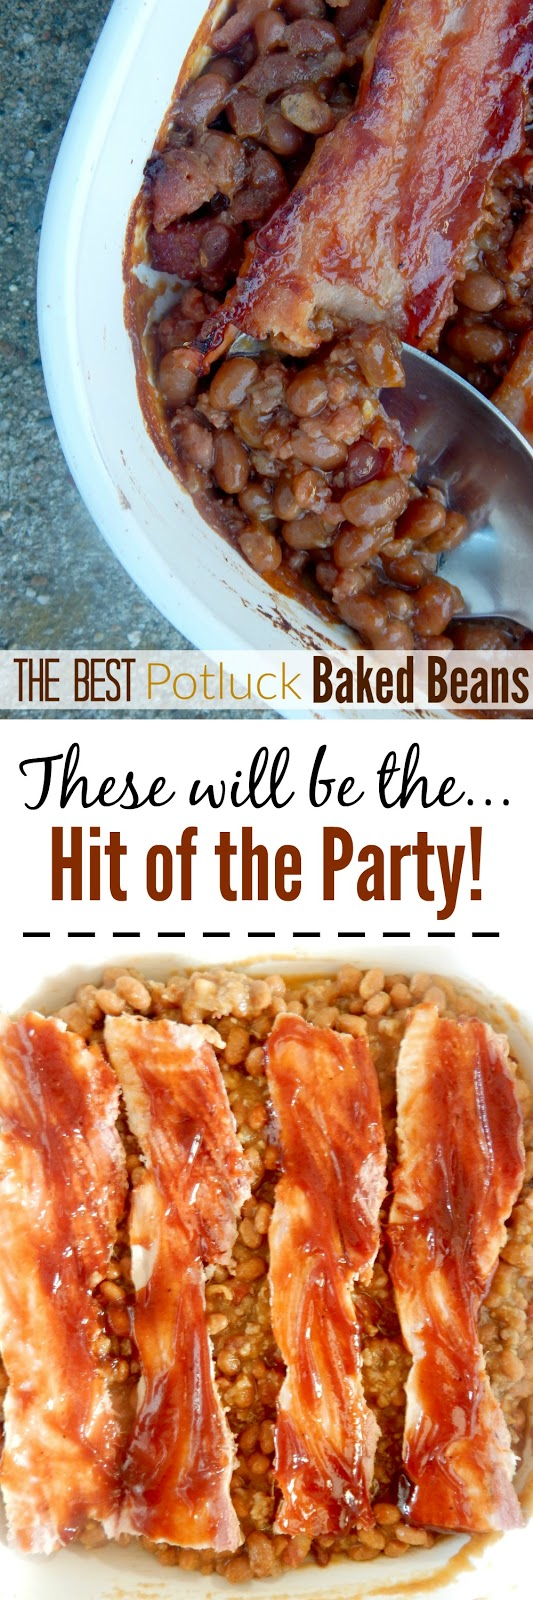 The BEST Potluck Baked Beans...these will be the hit of the party!  Sticky, salty and sweet this is the only way you'll want them from here on out! (sweetandsavoryfood.com)